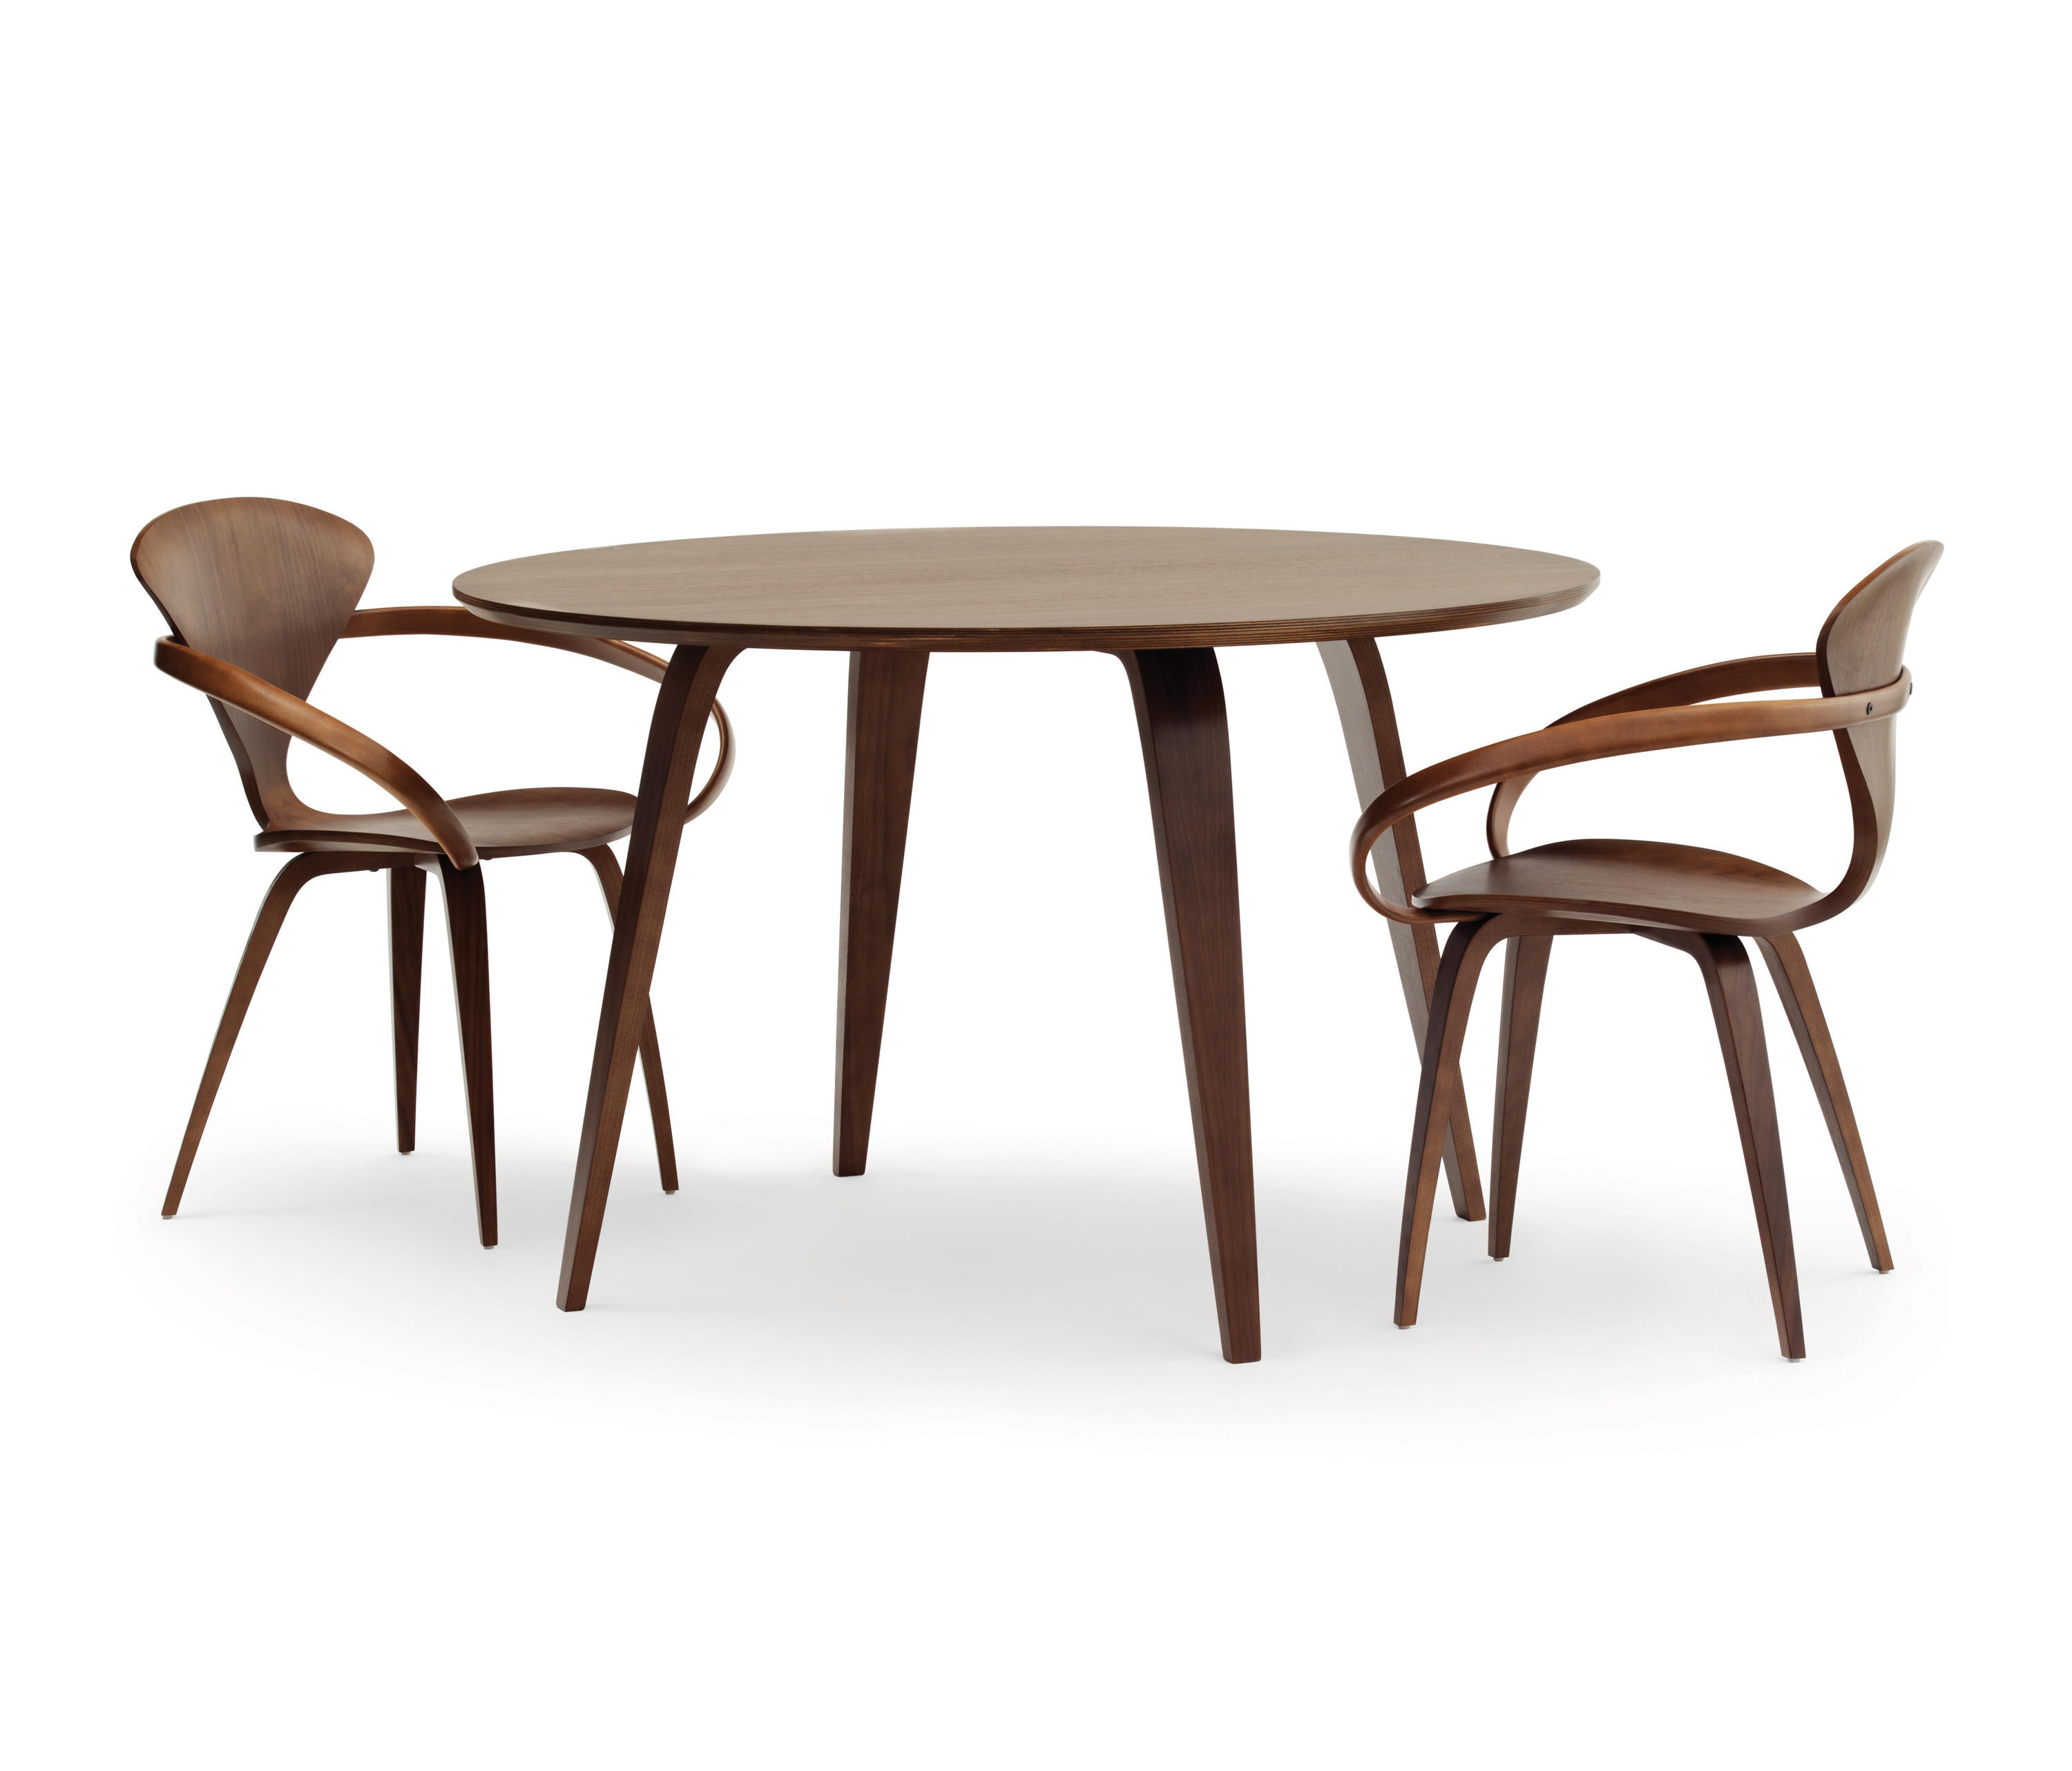 CHERNER ROUND TABLE Dining Tables From Cherner Architonic - Cherner dining table